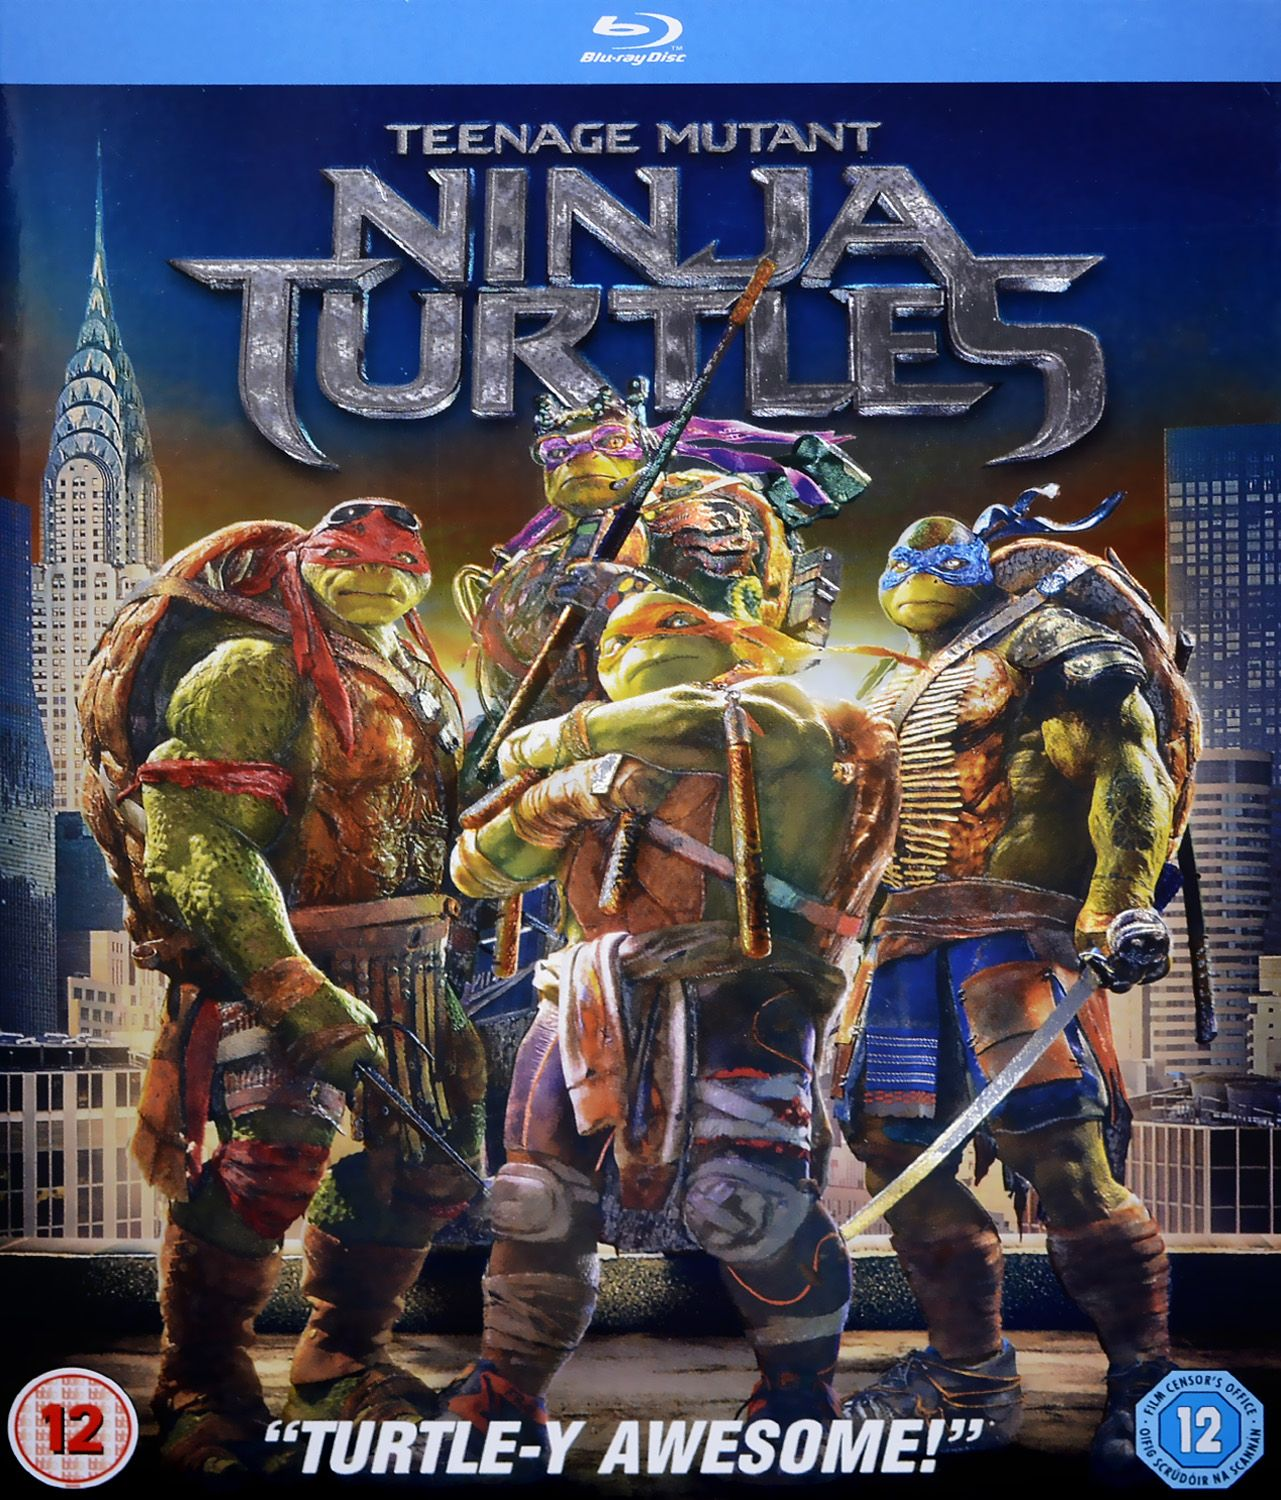 Teenage Mutant Ninja Turtles (Blu-Ray) - 2